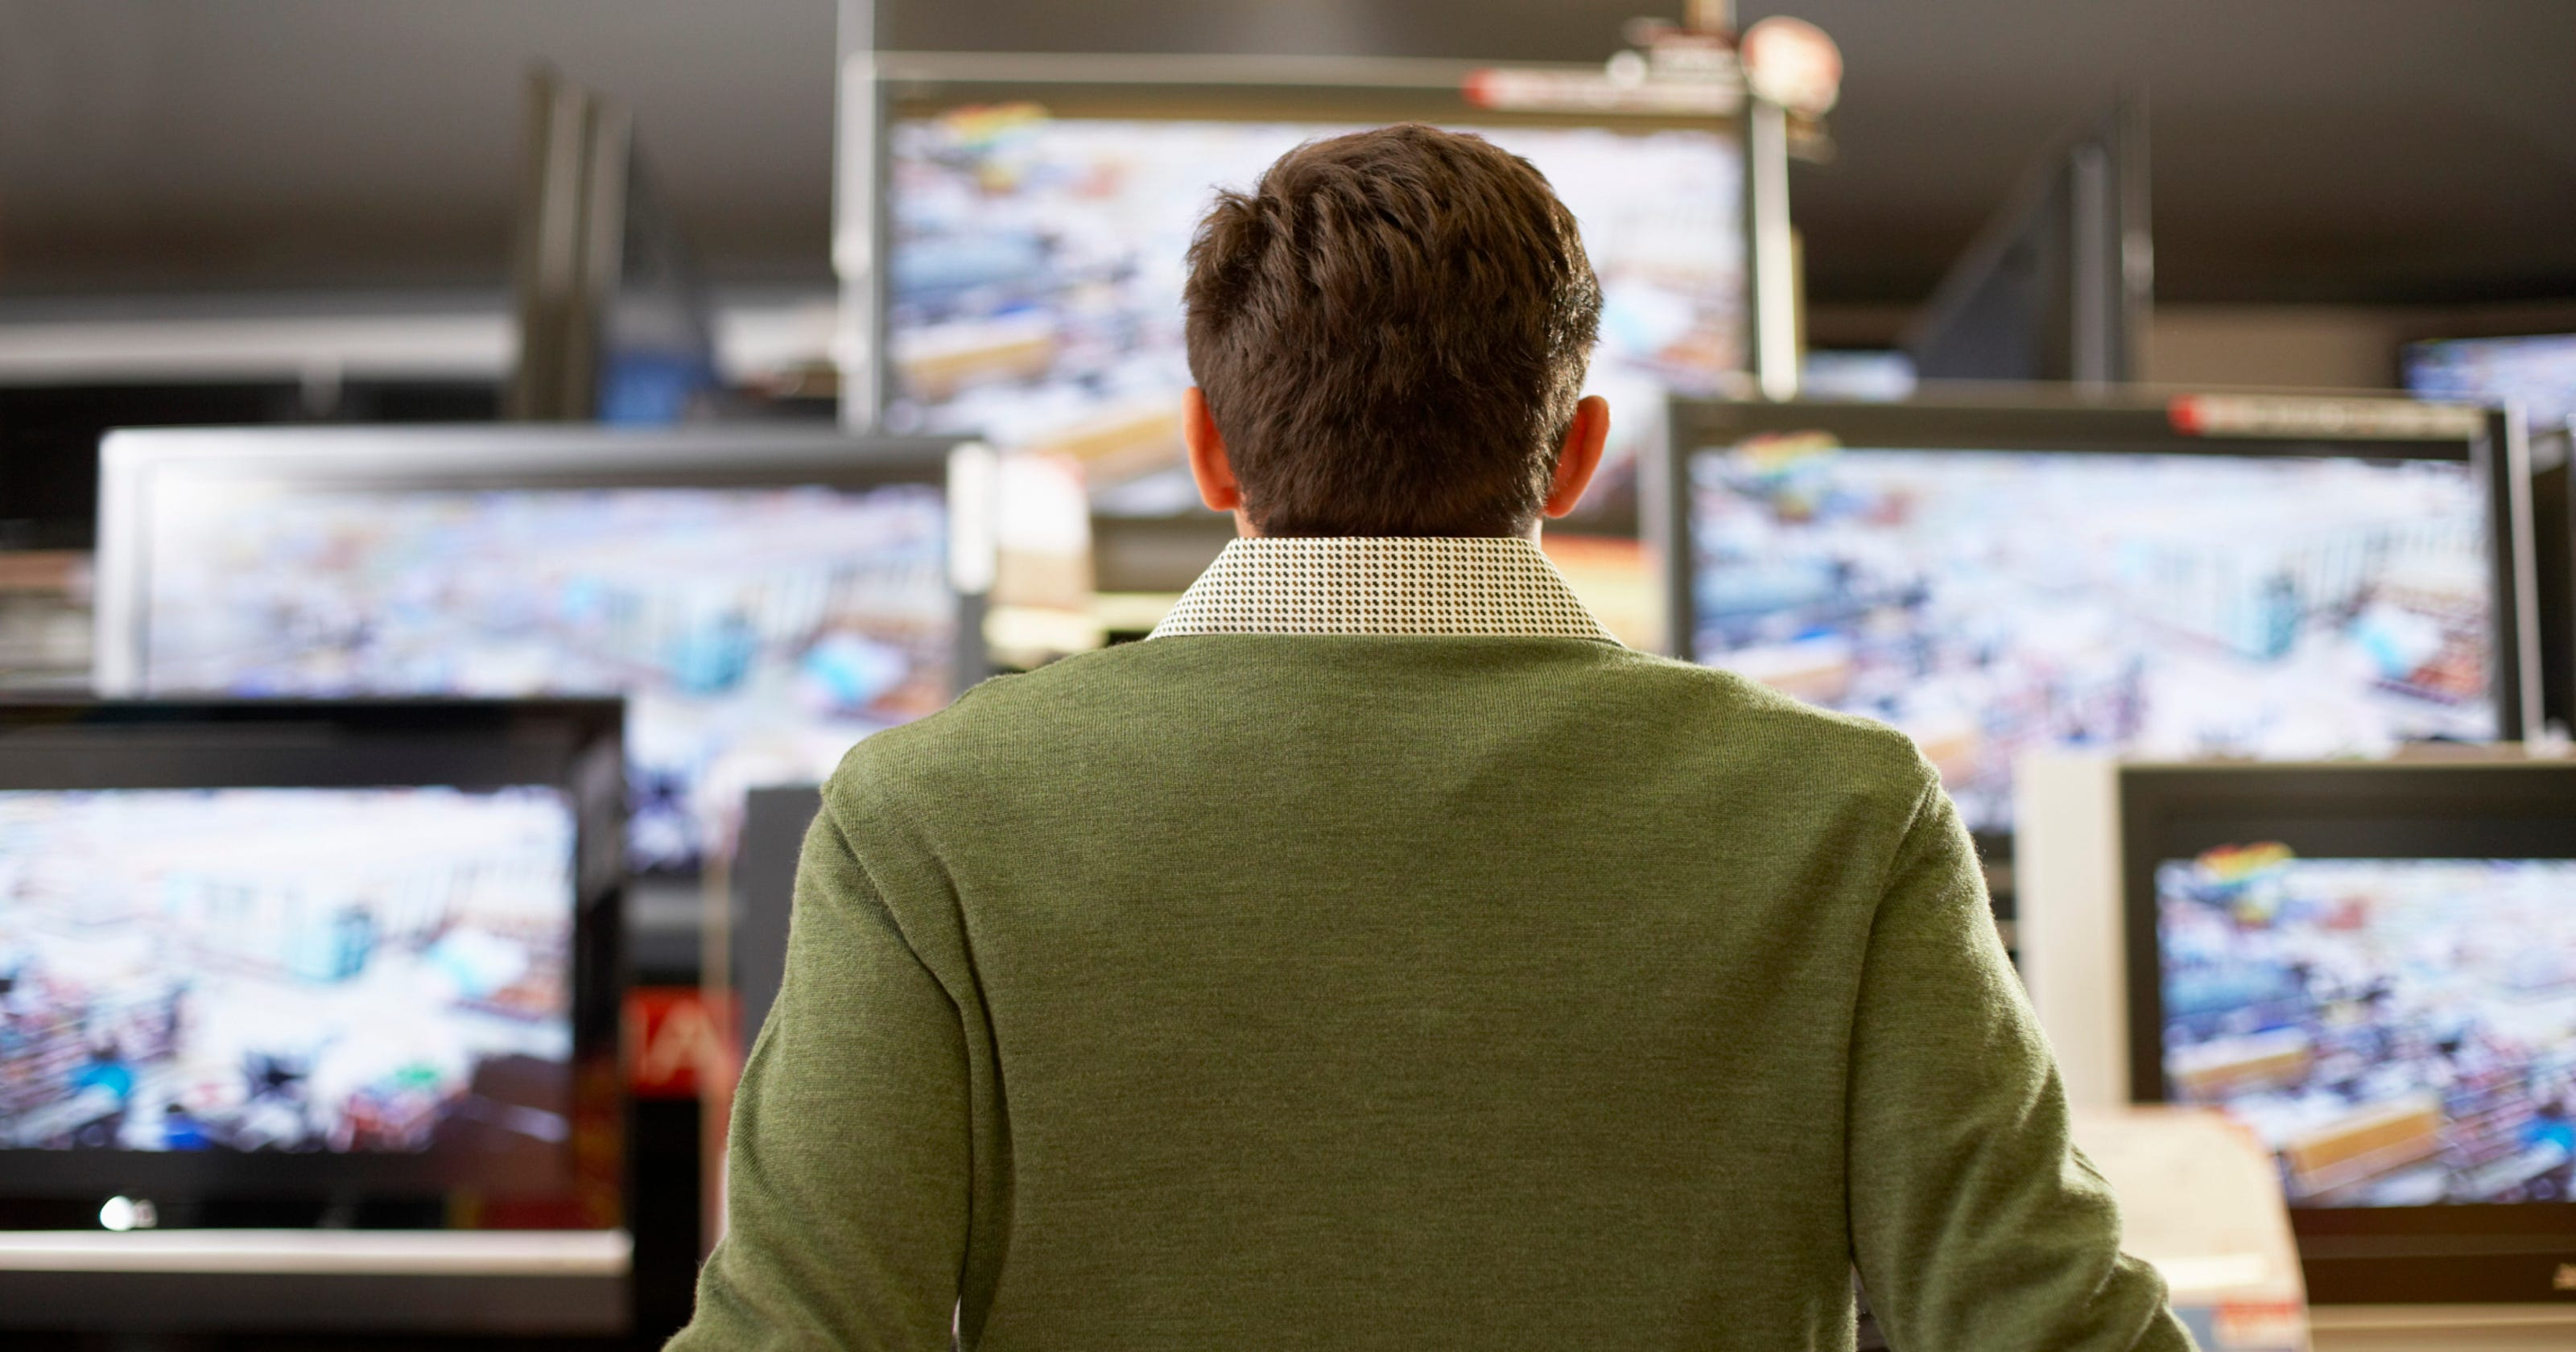 6 ways to get streaming video to your TV